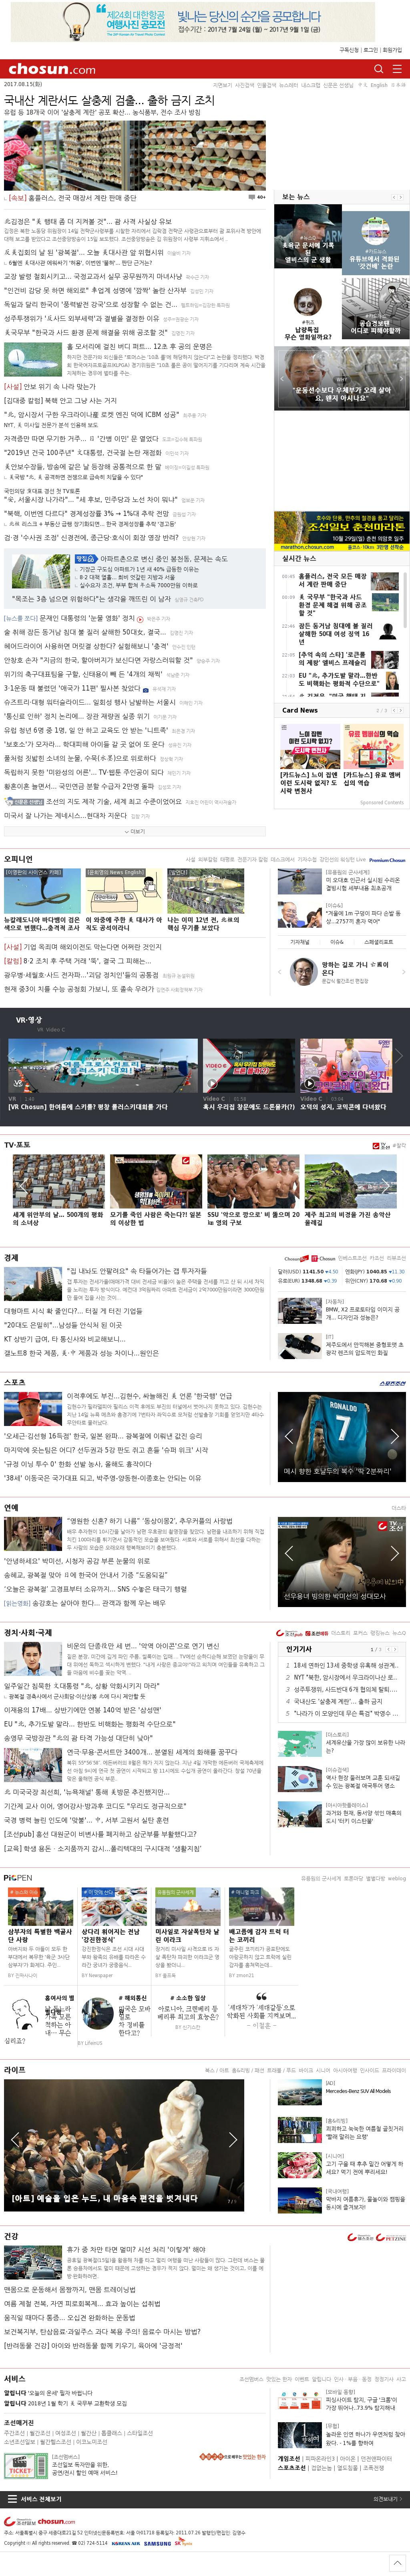 chosun.com at Tuesday Aug. 15, 2017, 1:02 a.m. UTC